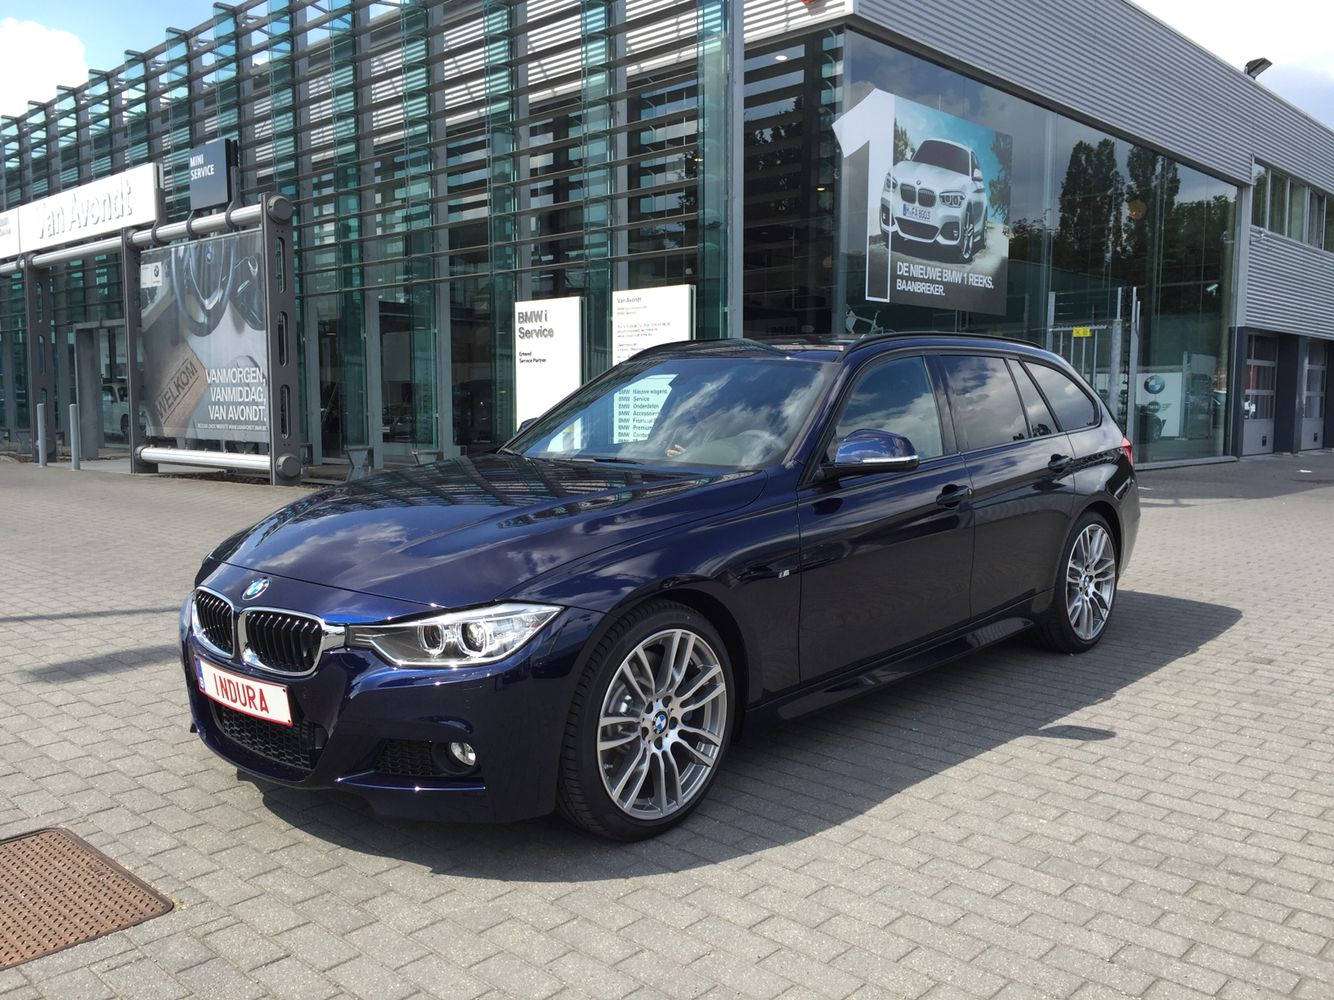 bmw f31 330d touring m sport in individual tanzanite blue cars motorcycles pinterest bmw. Black Bedroom Furniture Sets. Home Design Ideas